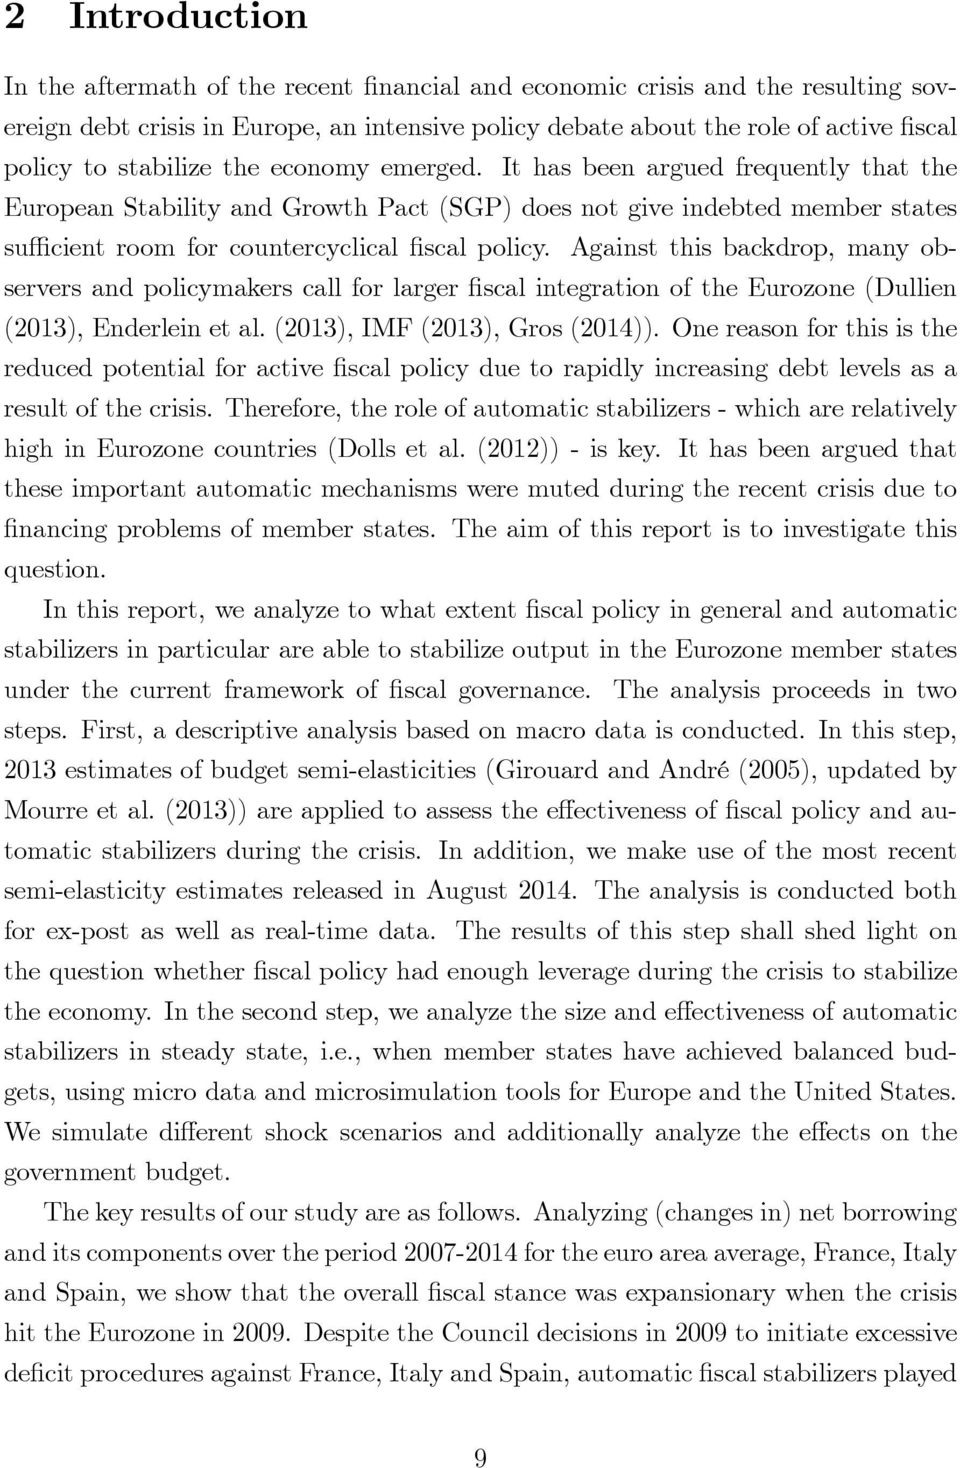 Against this backdrop, many observers and policymakers call for larger scal integration of the Eurozone (Dullien (), Enderlein et al. (), IMF (), Gros ()).